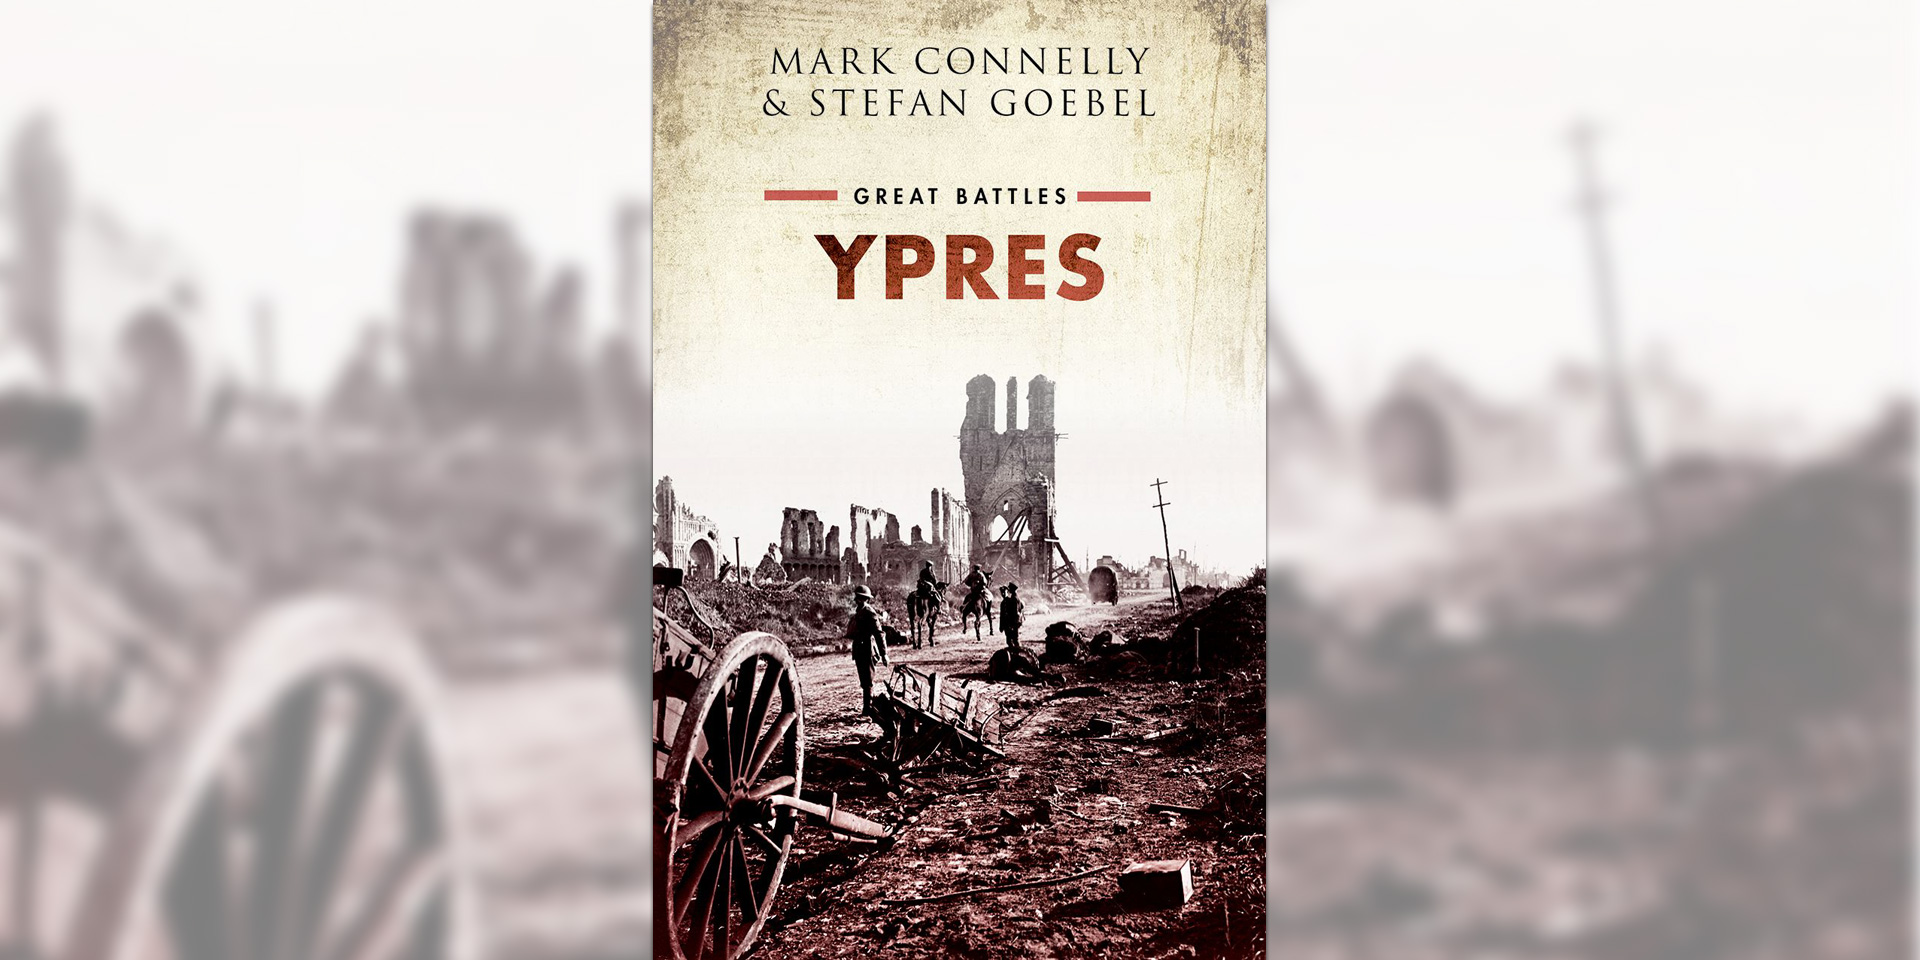 'Great Battles series: Ypres' book cover